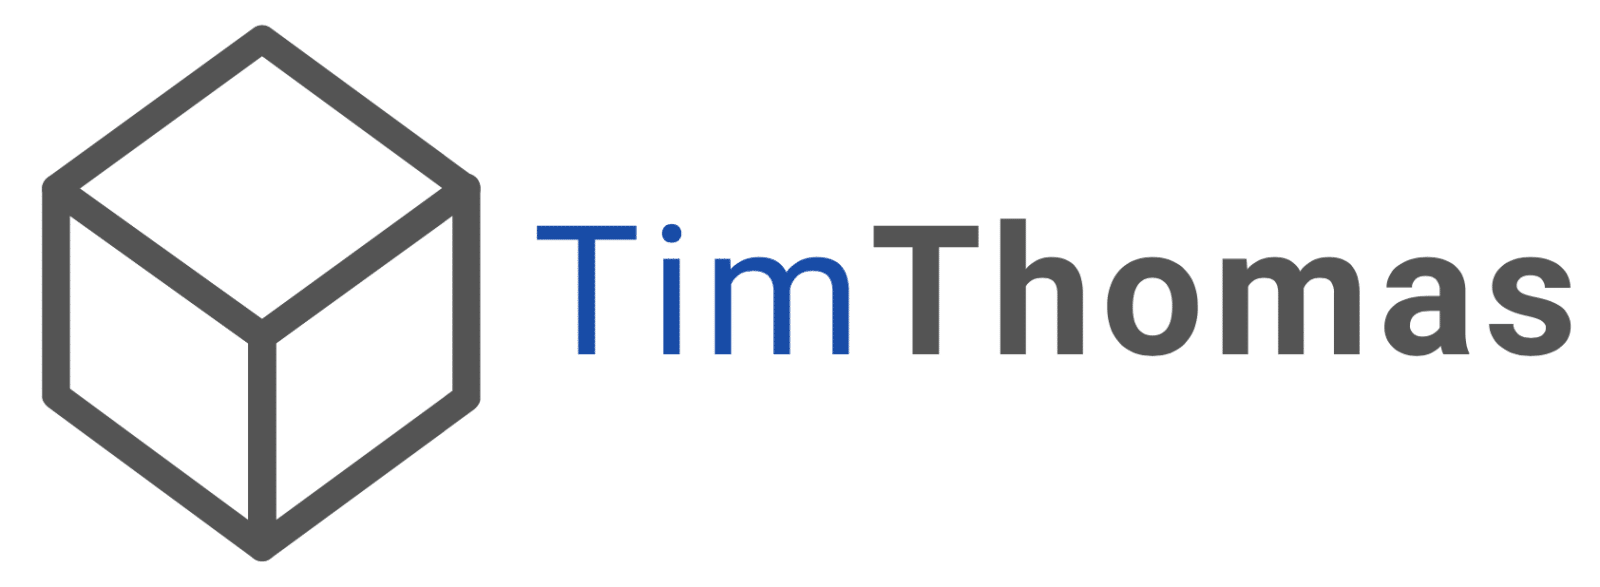 Tim Thomas Co